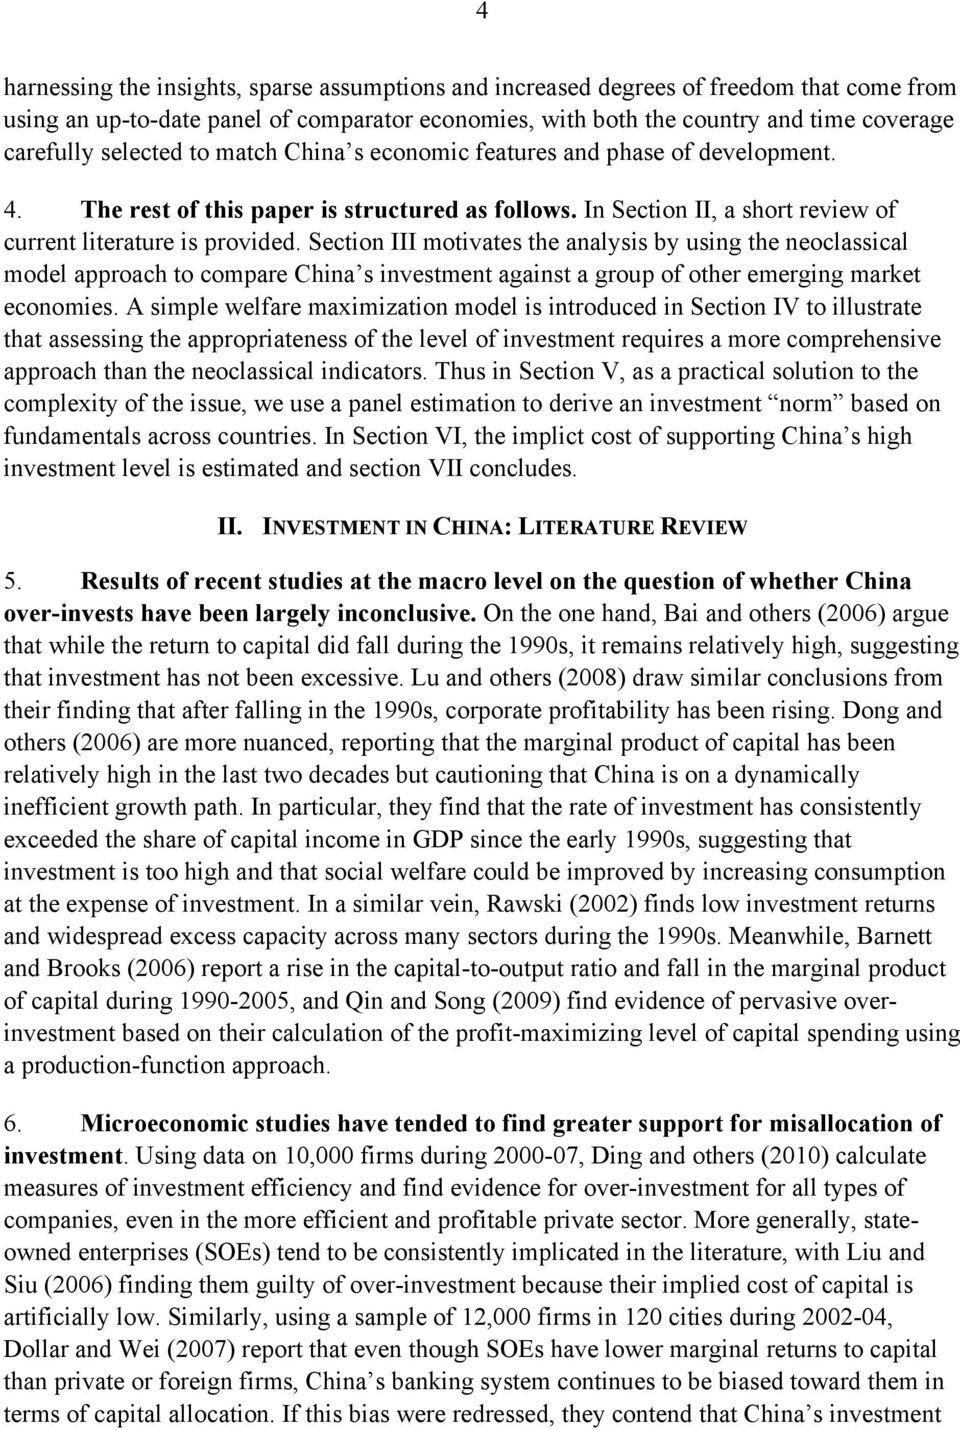 Secion III moivaes he analysis by using he neoclassical model approach o compare China s invesmen agains a group of oher emerging marke economies.